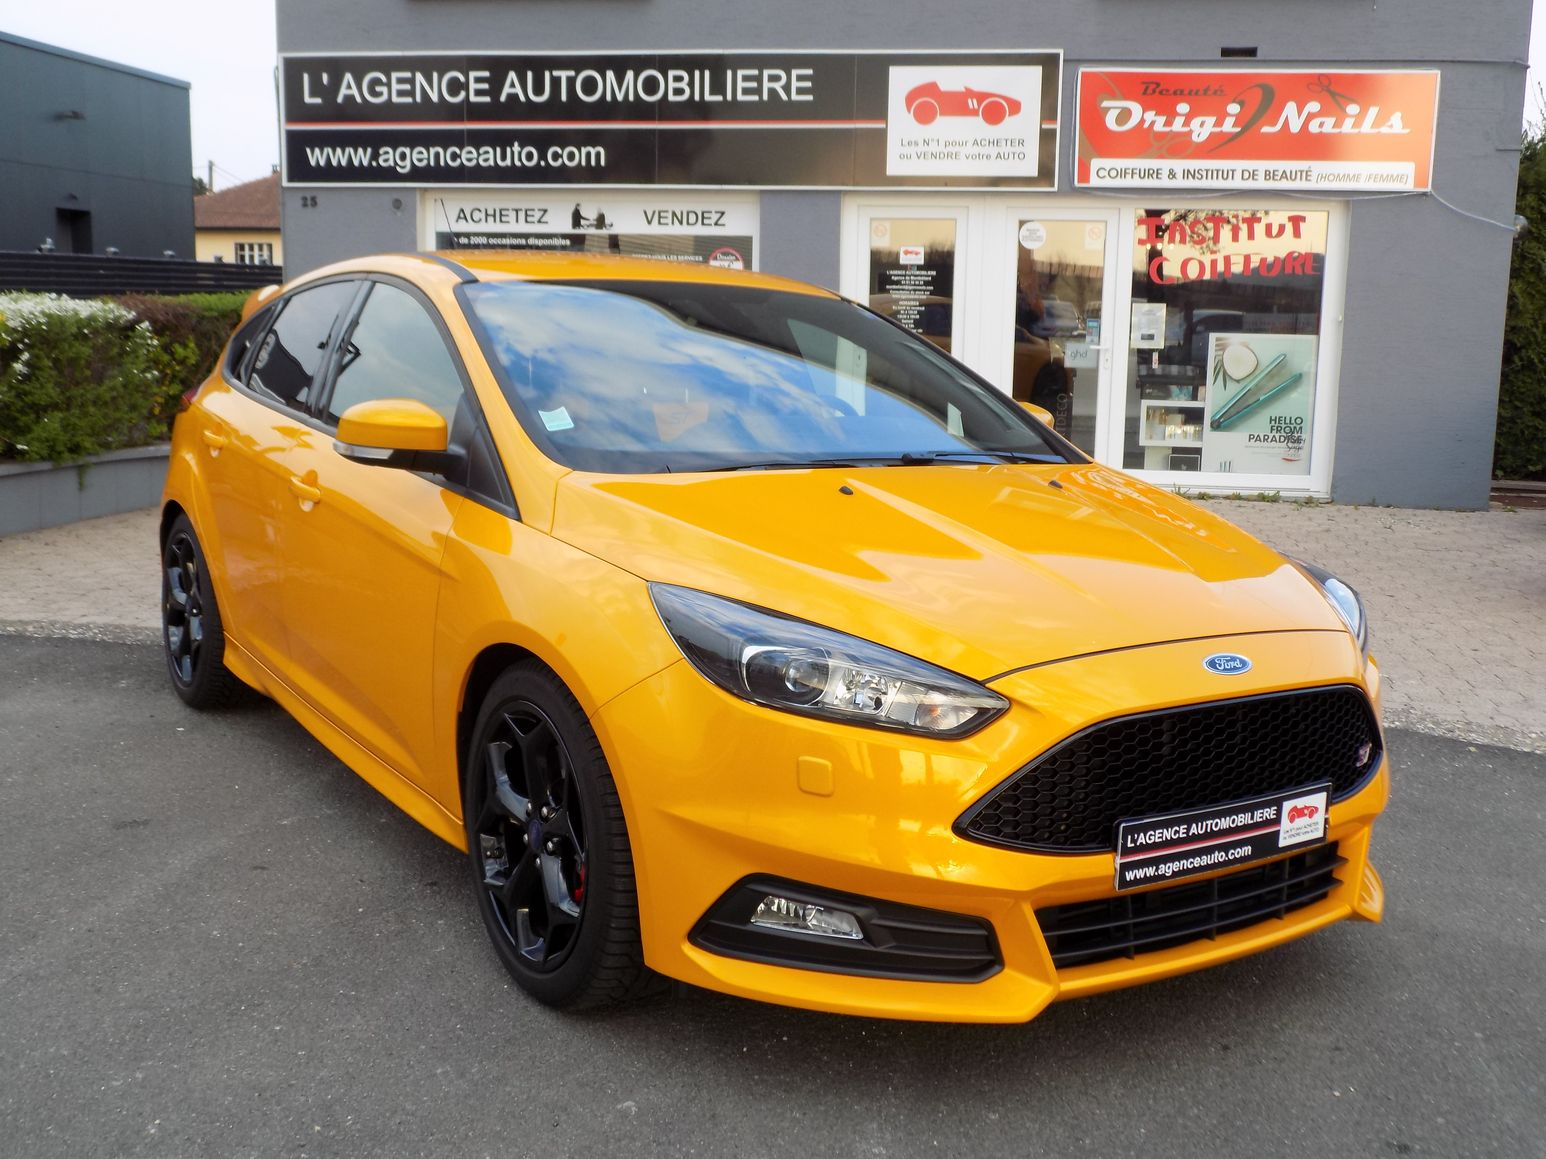 ford focus st tdci 185 cv occasion montbeliard pas cher voiture occasion doubs 25400 agence. Black Bedroom Furniture Sets. Home Design Ideas